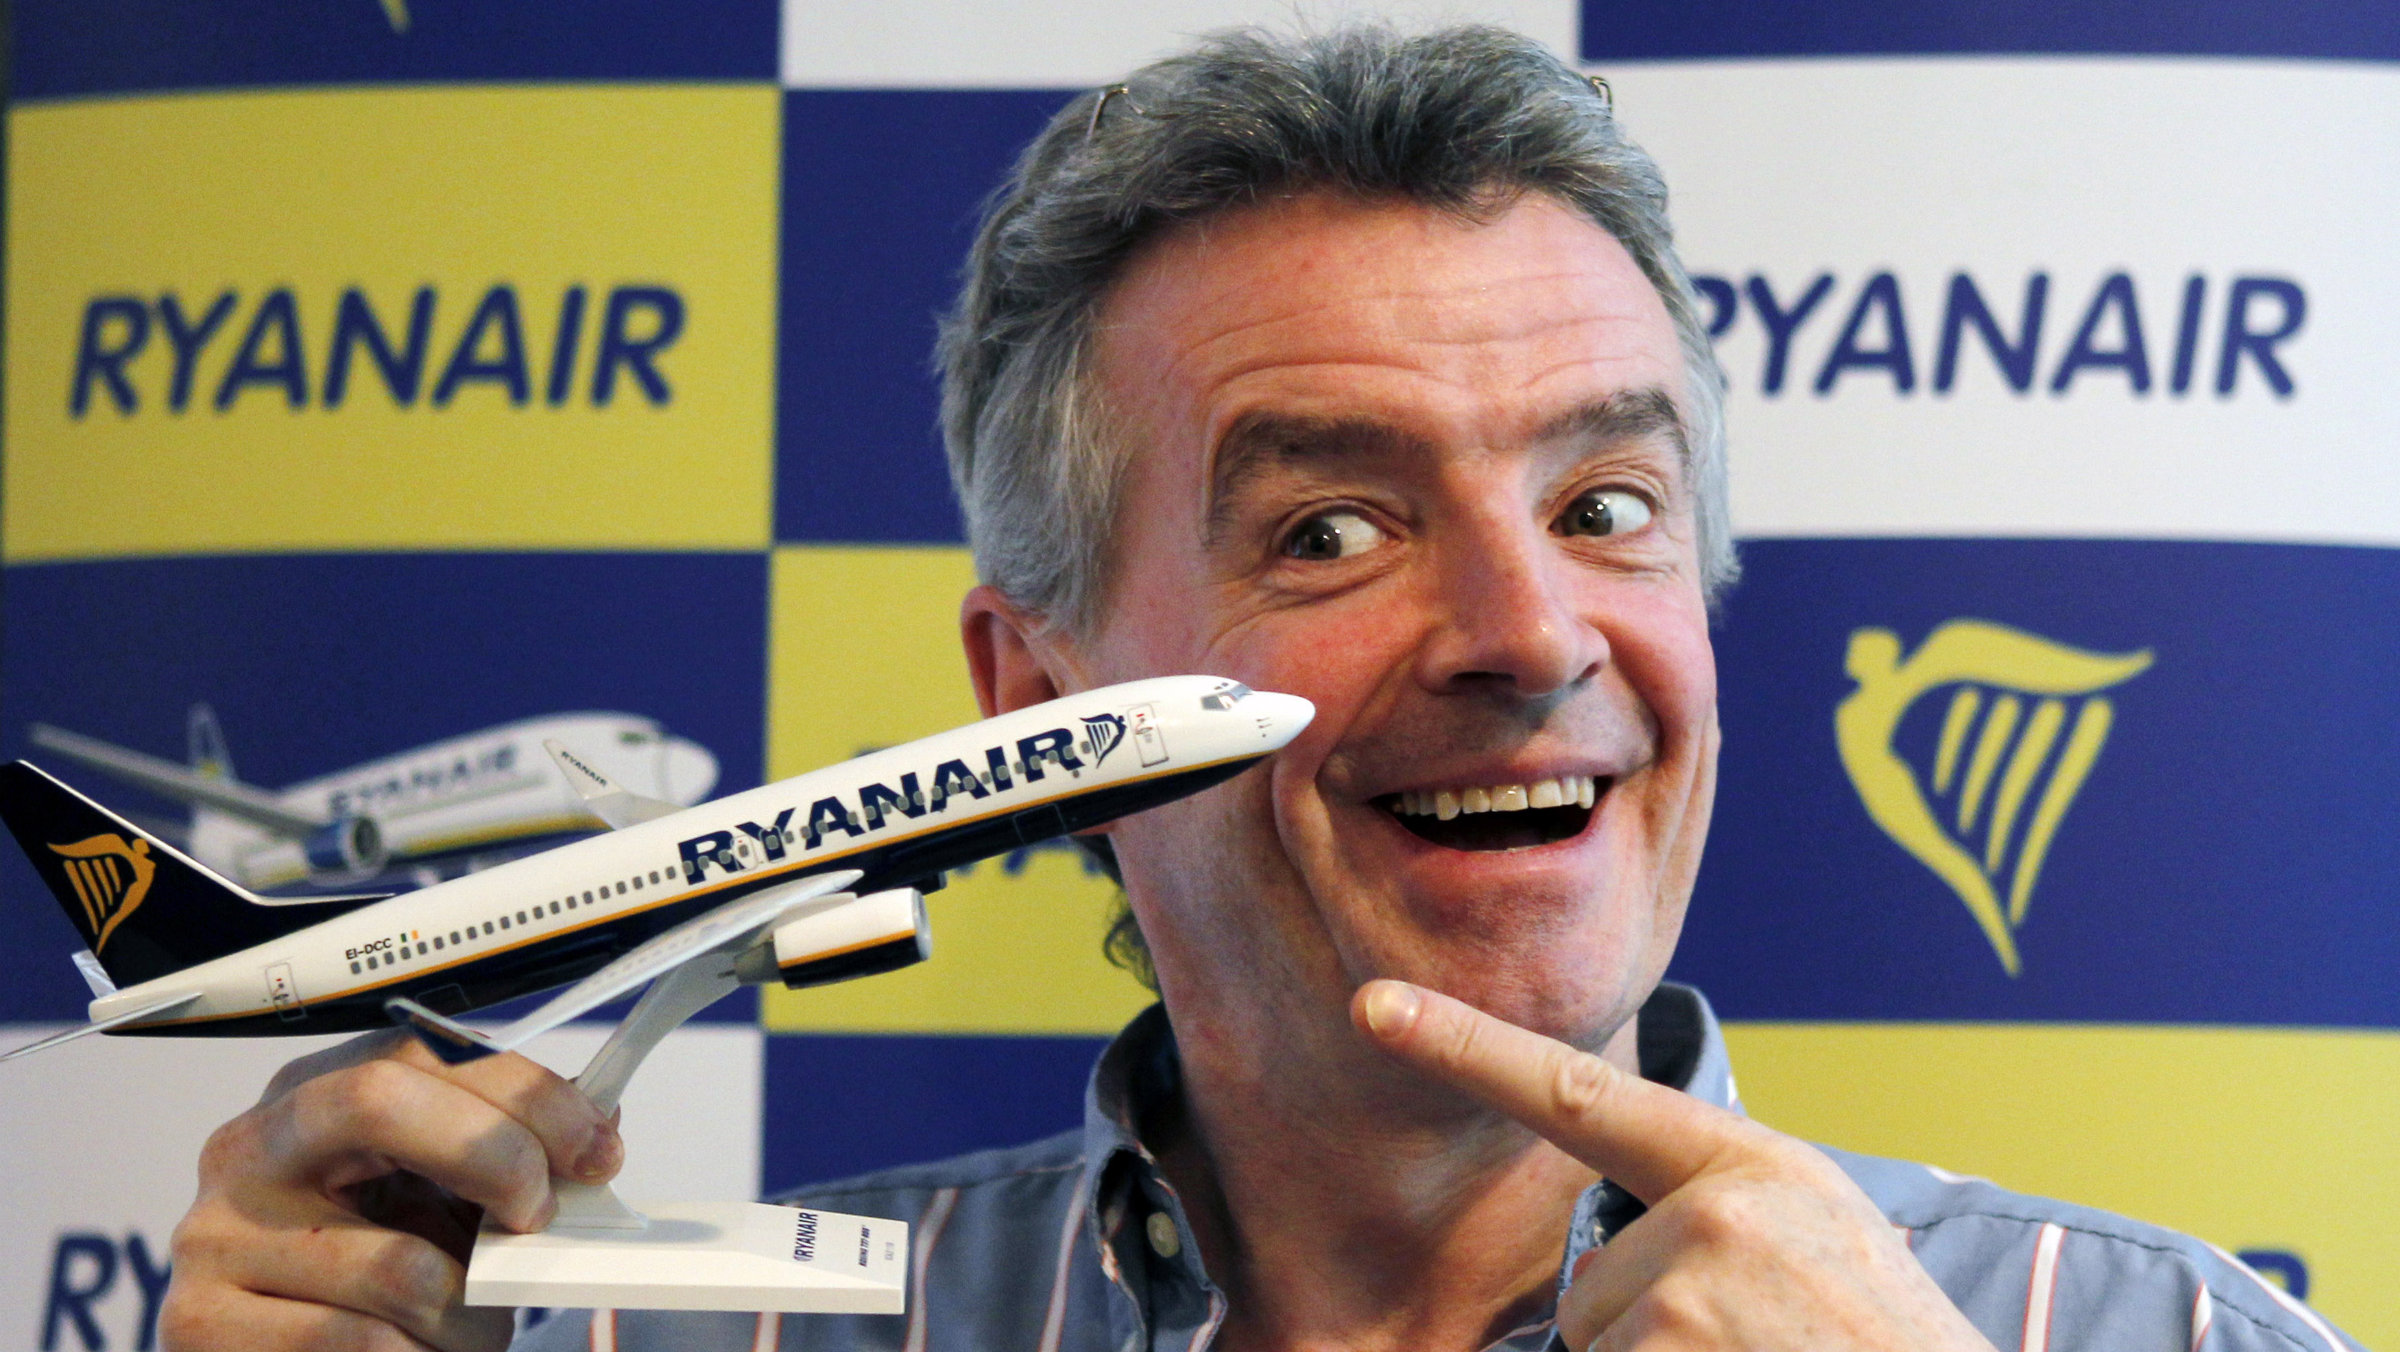 Ryanair Chief Executive Michael O'Leary poses for a photo after a news conference.